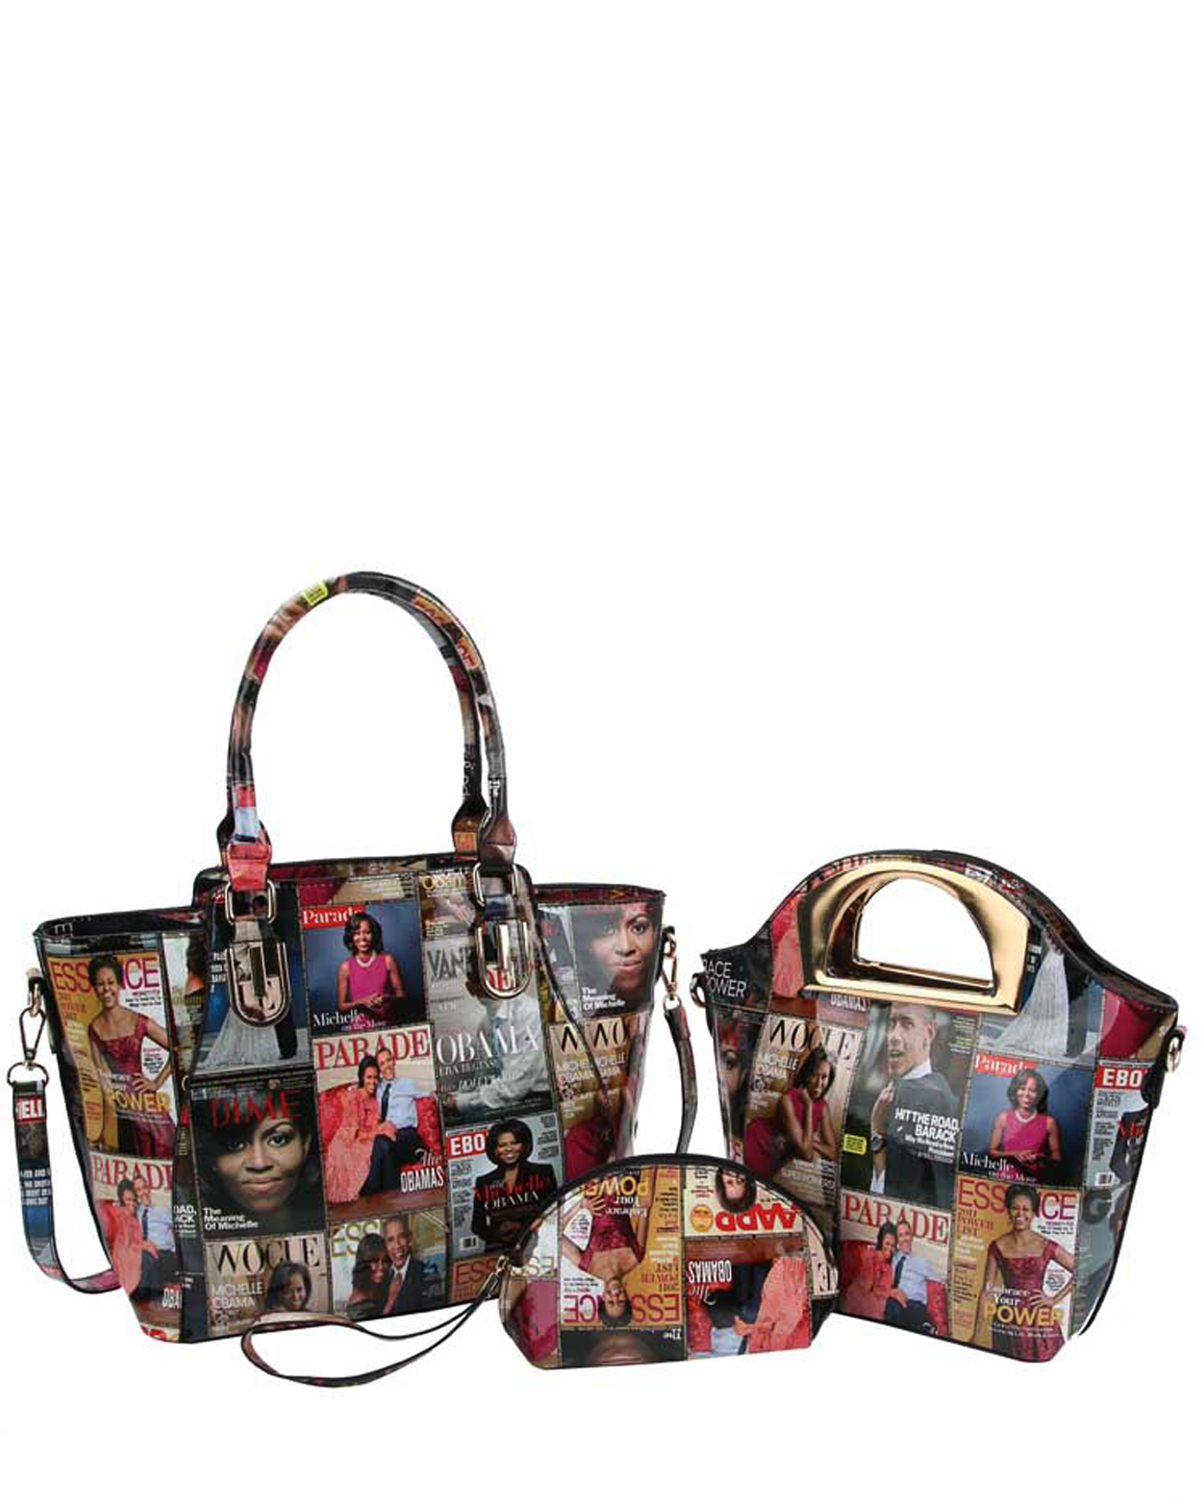 Get Incredible Discount Prices on our Wholesale Fashion Handbags Today! c75a7043724d2